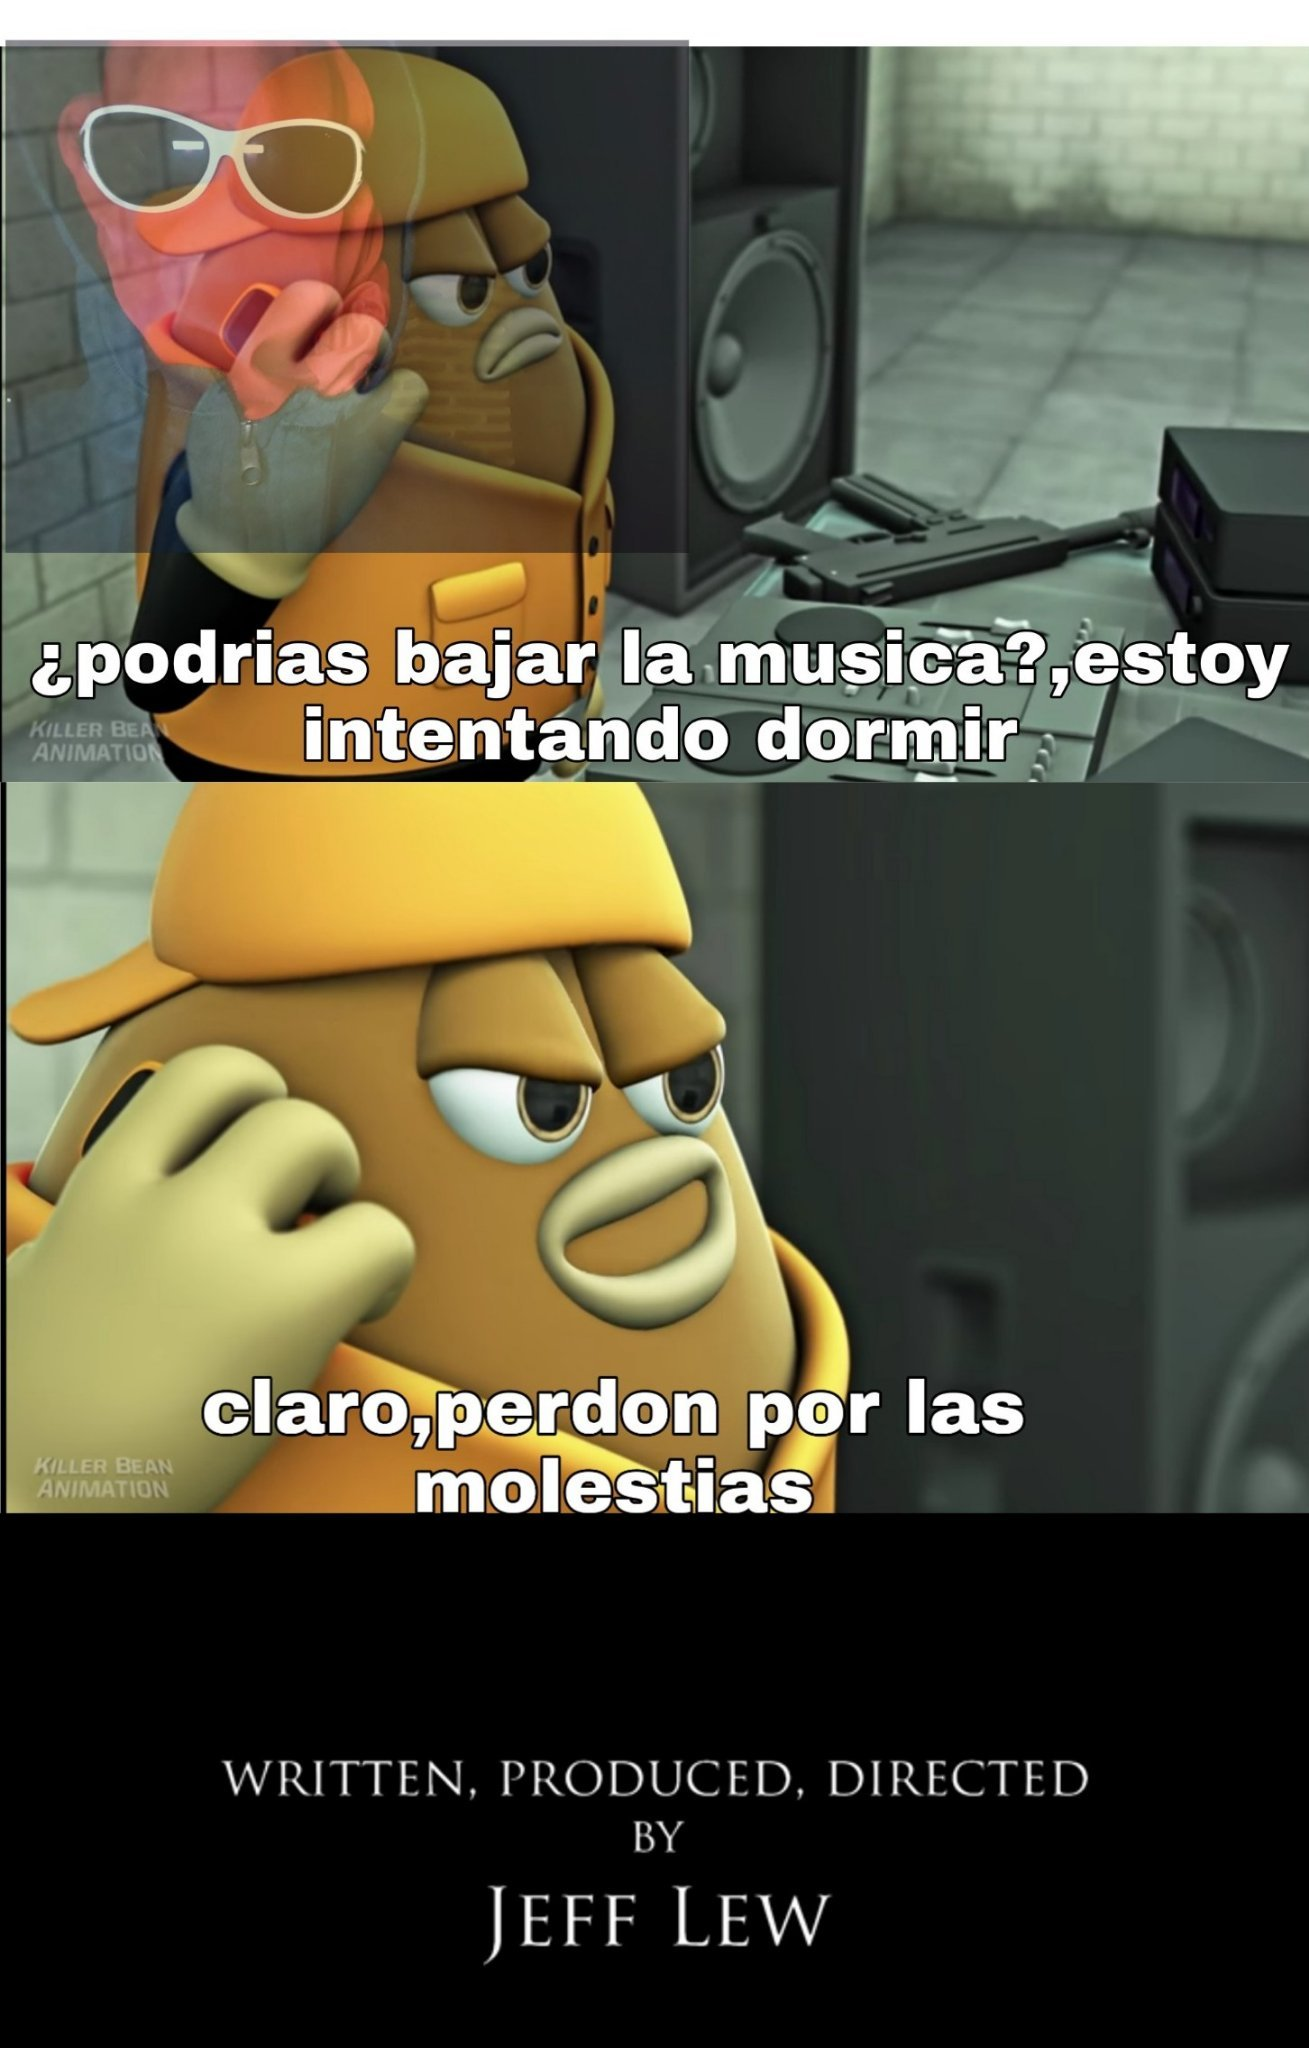 Killer bean,tremendo peliculon - meme